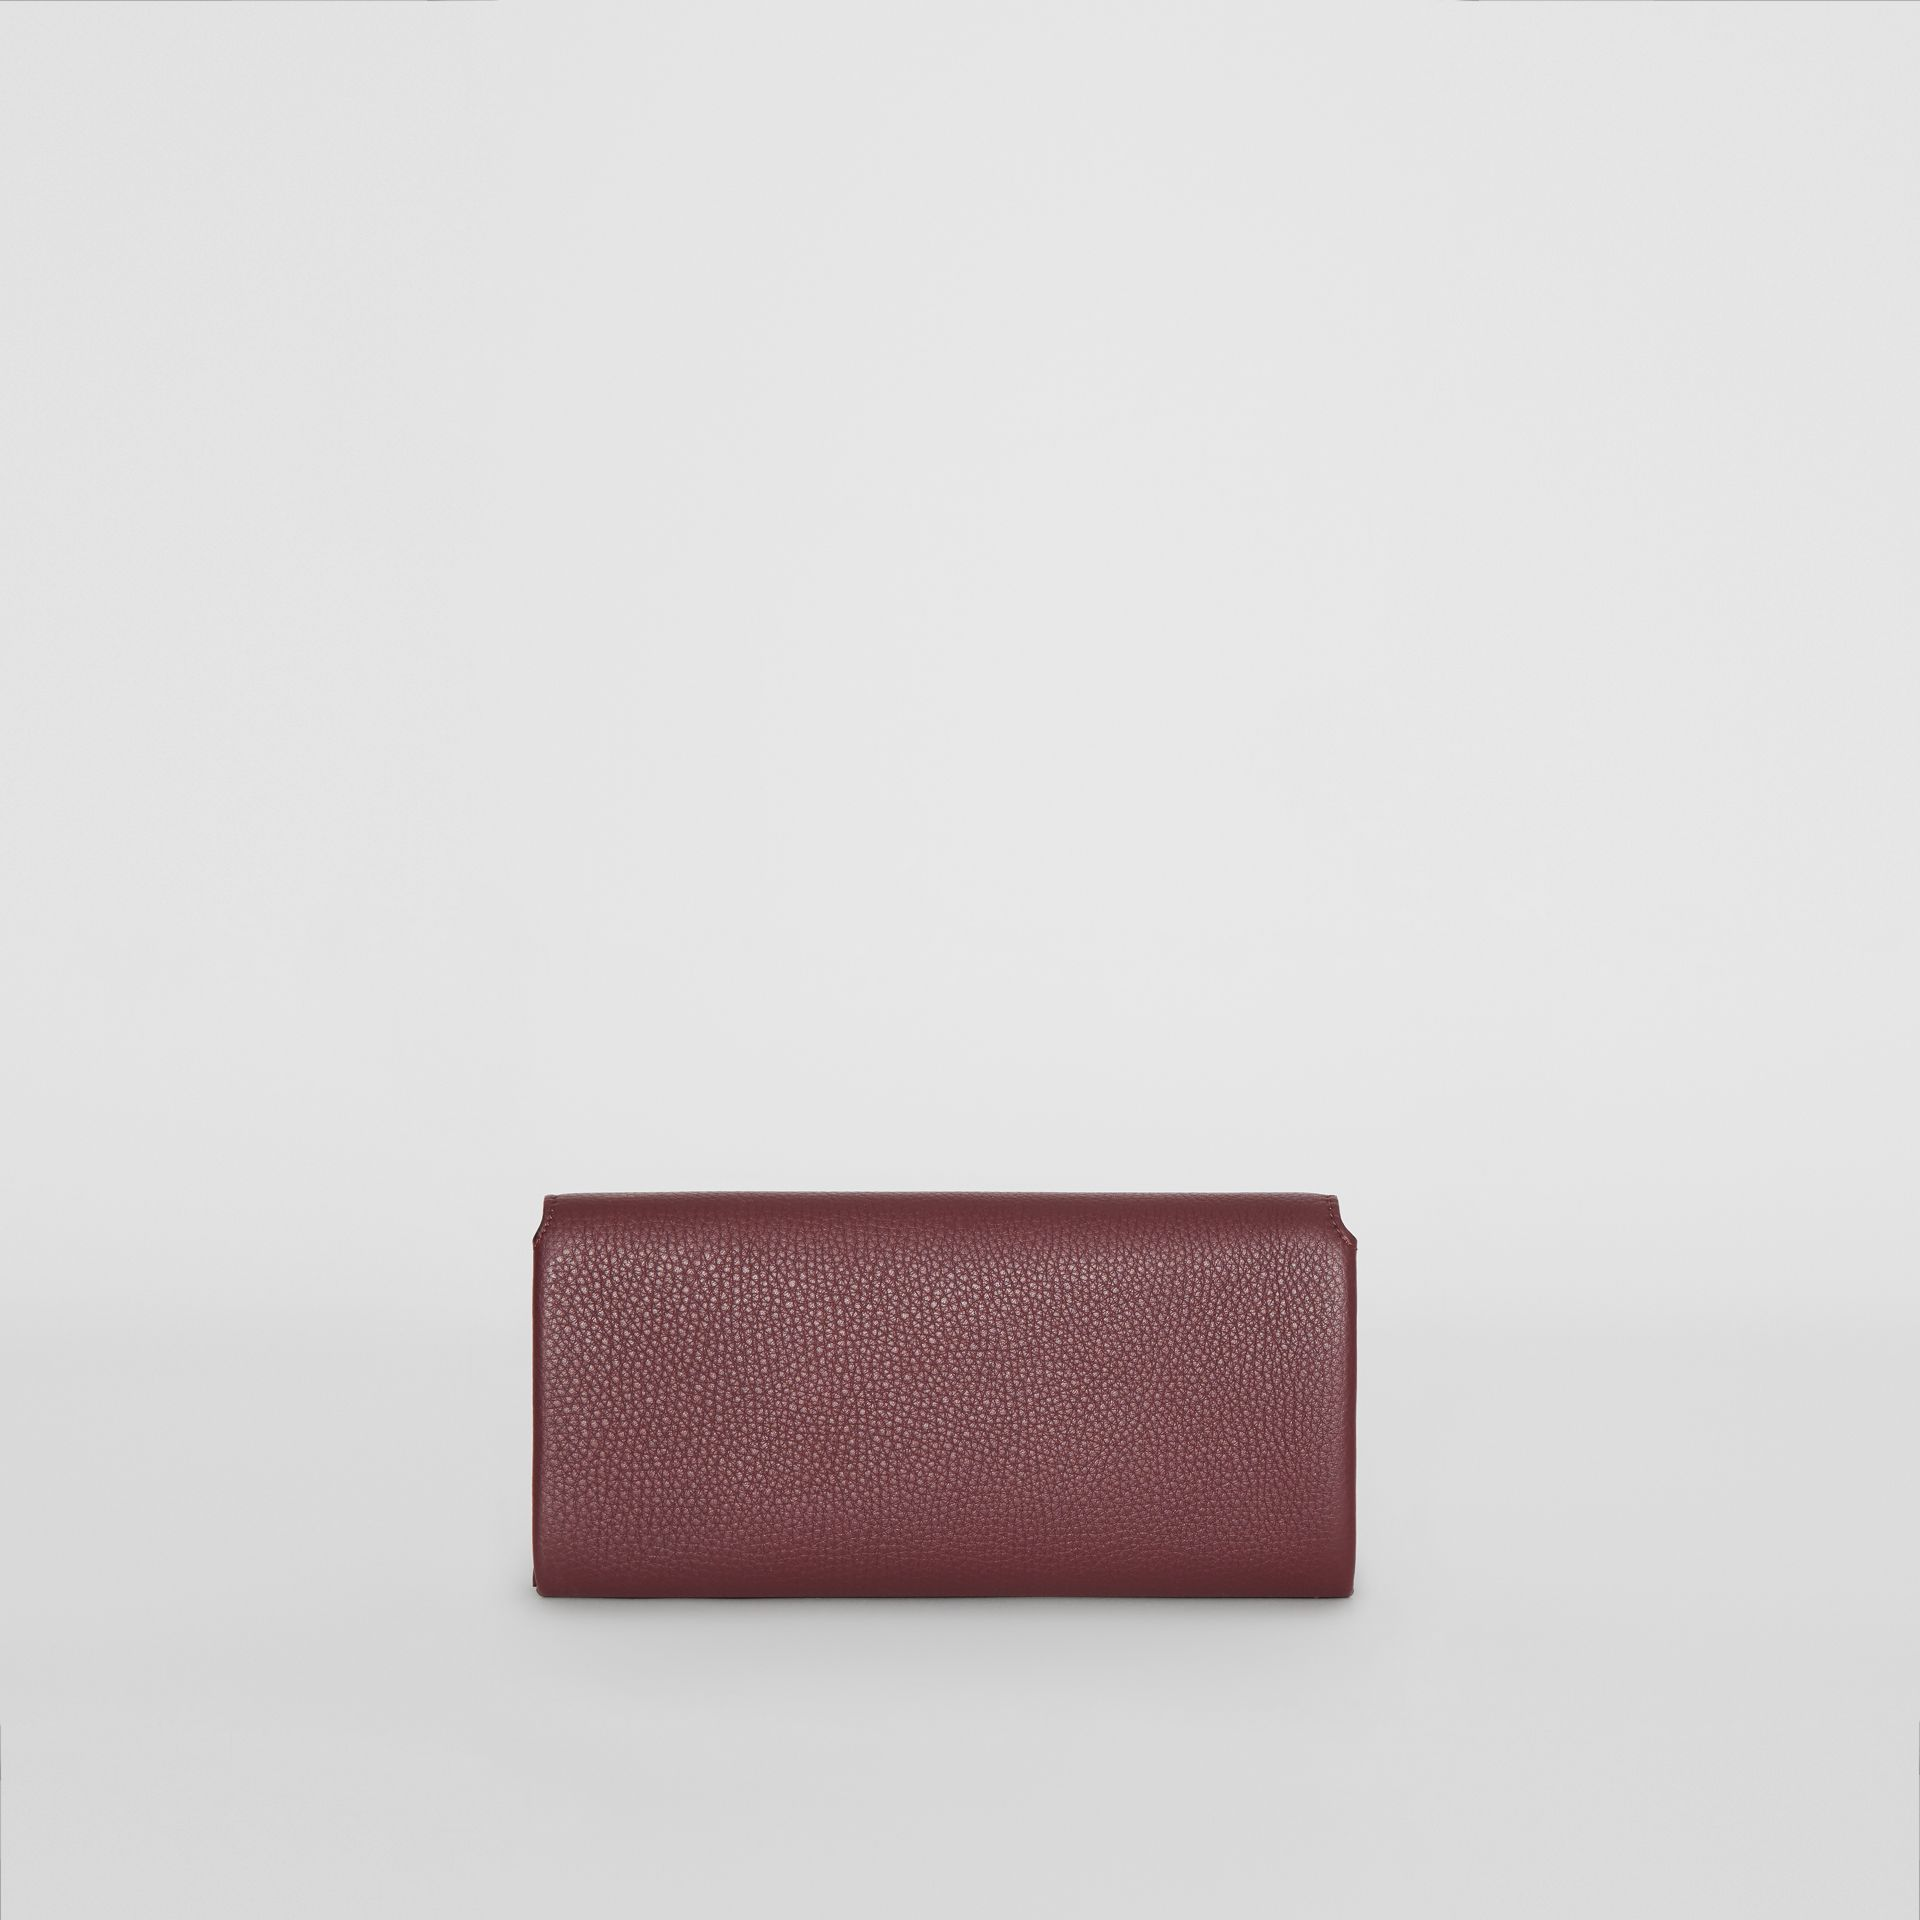 Two-tone Leather Continental Wallet in Deep Claret - Women | Burberry United States - gallery image 5